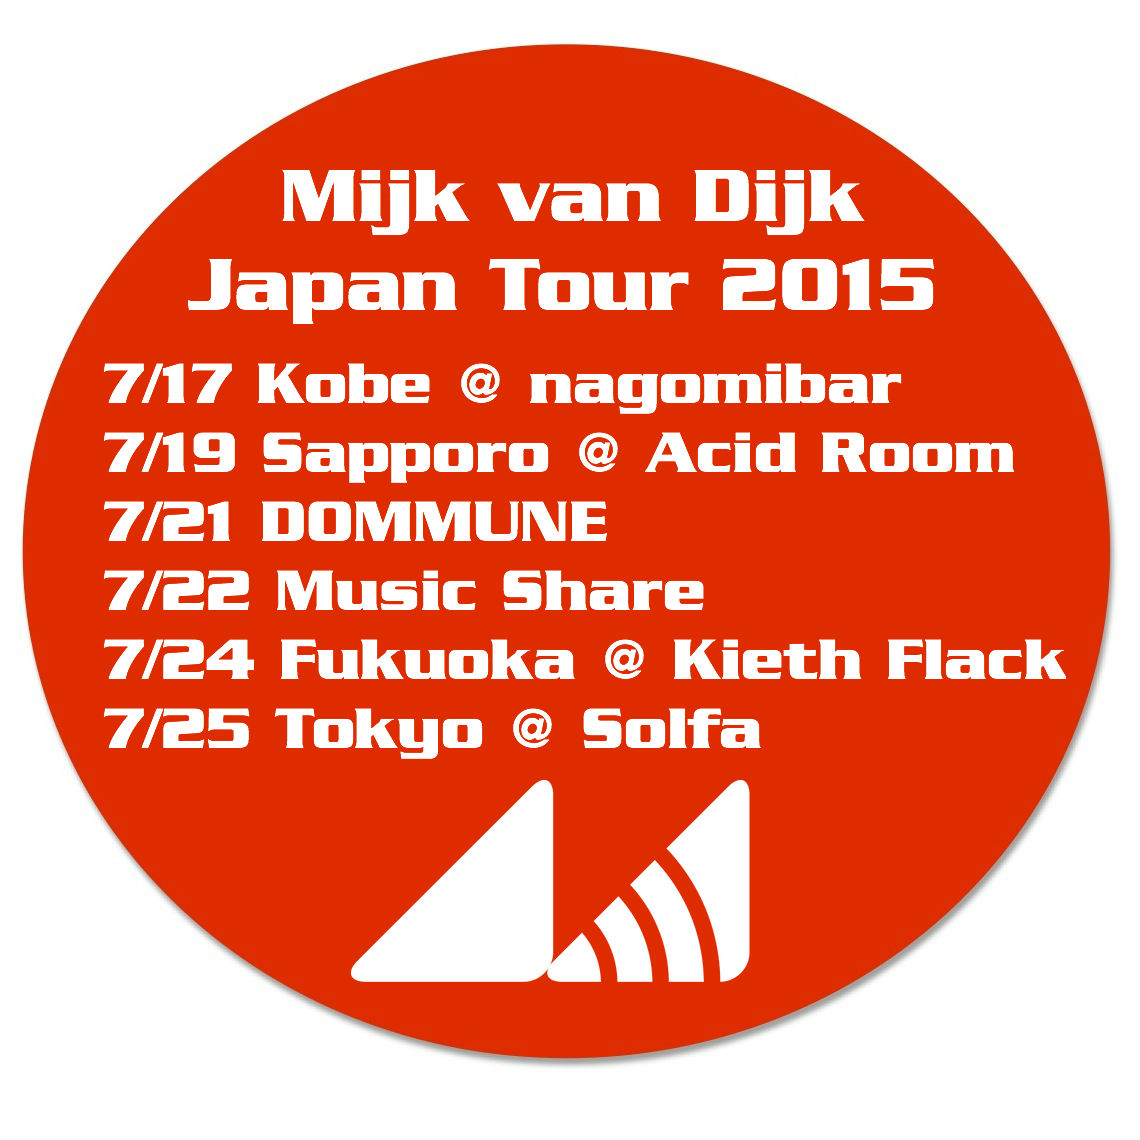 Mijk van Dijk Japan Tour 2015